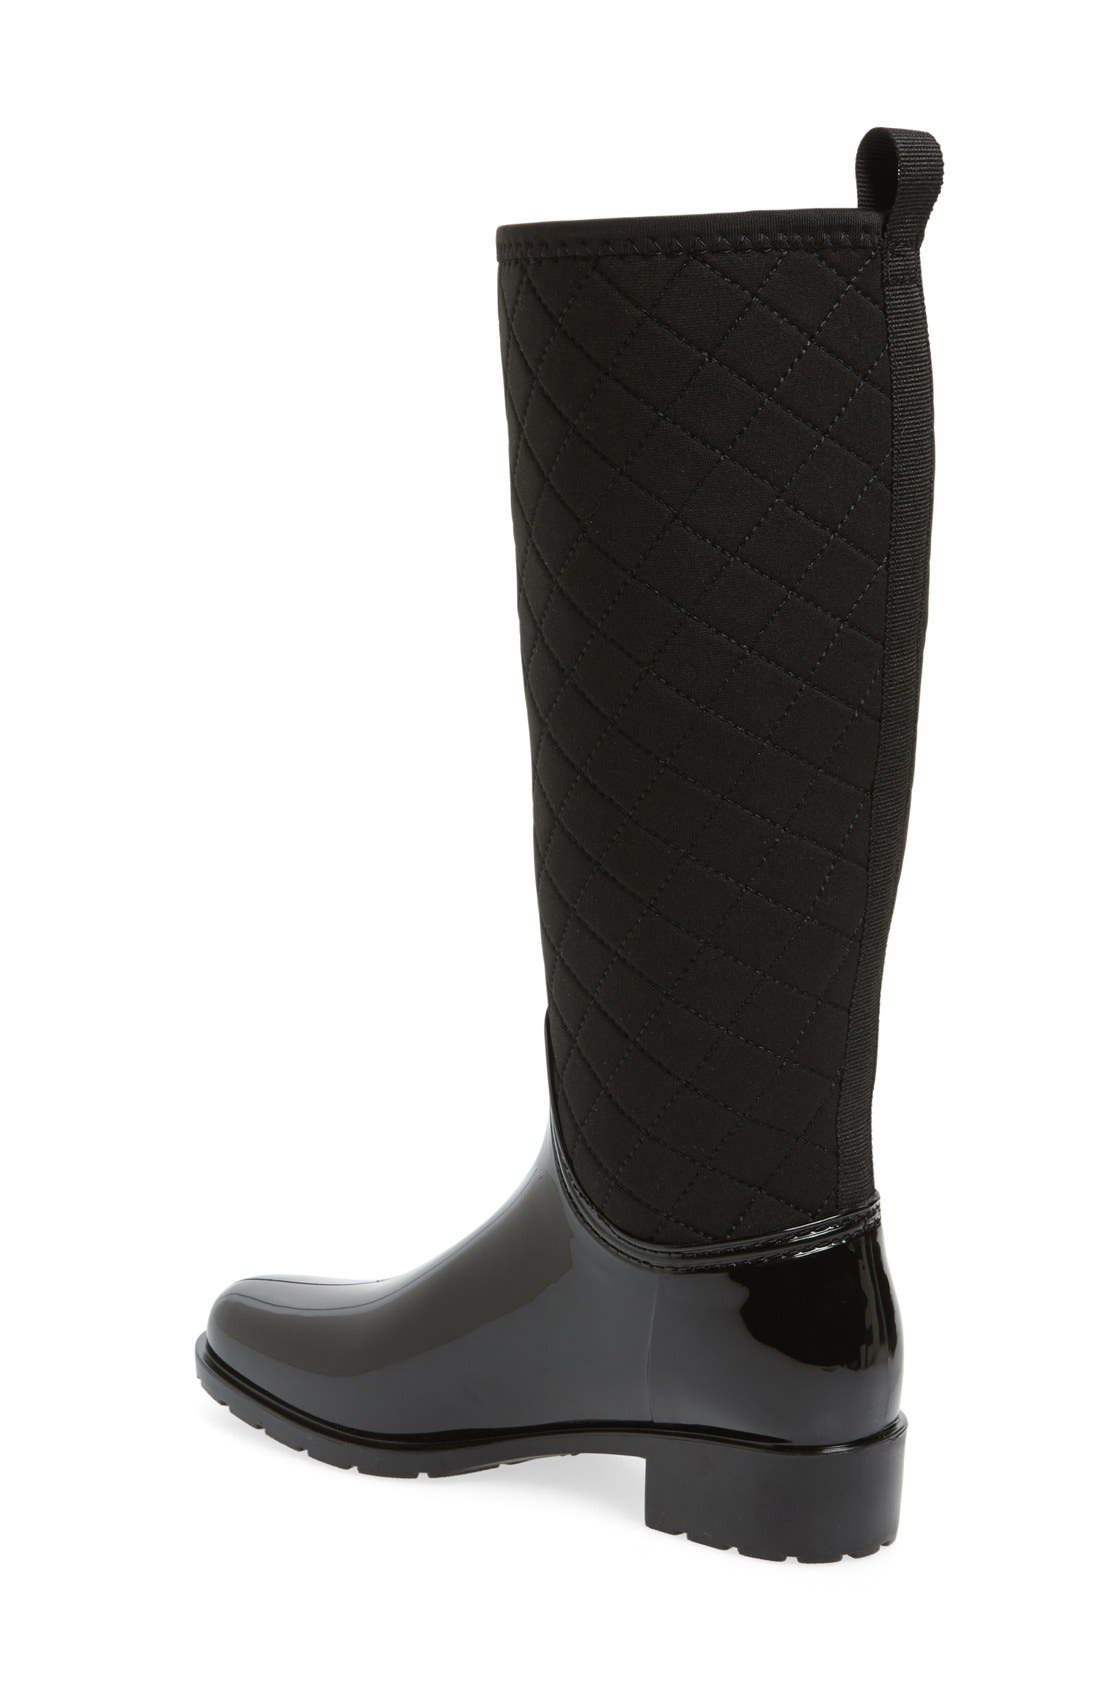 Parma Quilted Tall Waterproof Rain Boot,                             Alternate thumbnail 2, color,                             Black